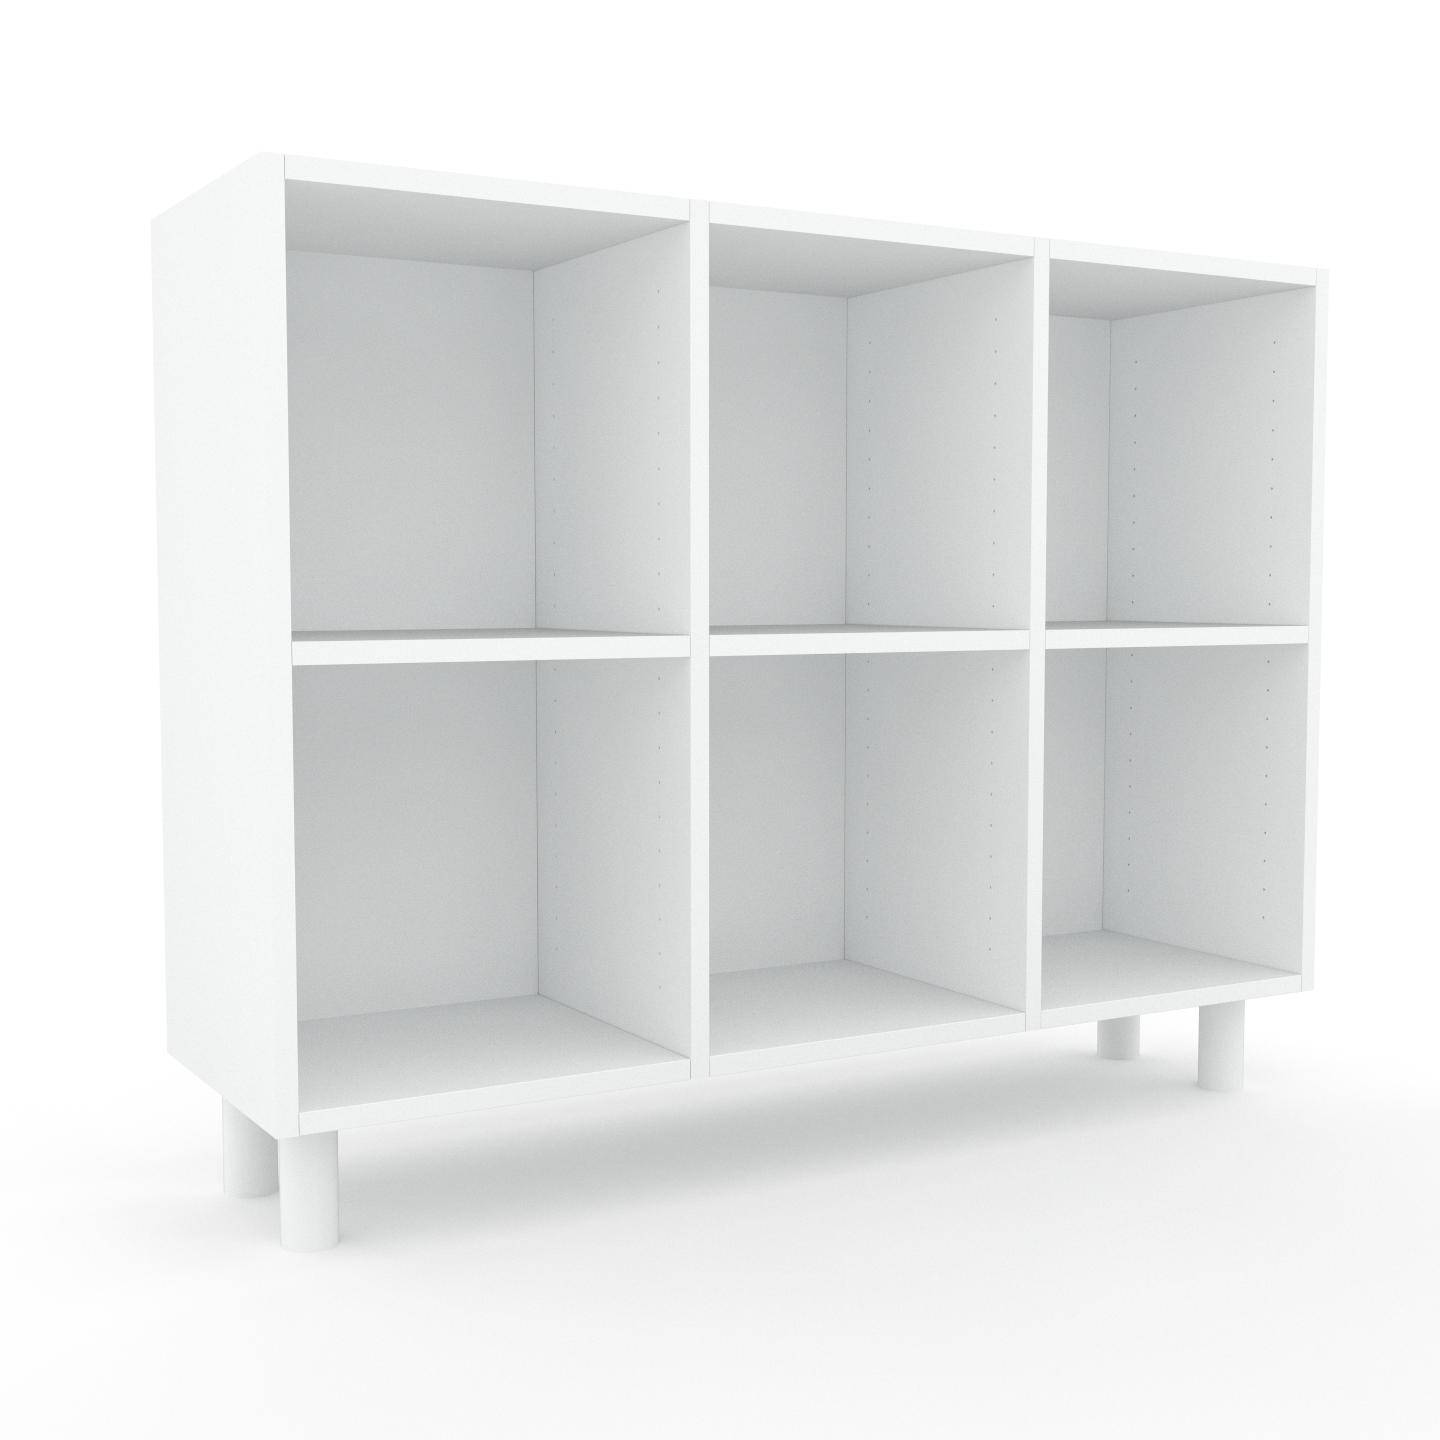 MYCS Range CD - Blanc, design contemporain, meuble pour vinyles, DVD - 118 x 91 x 35 cm, personnalisable